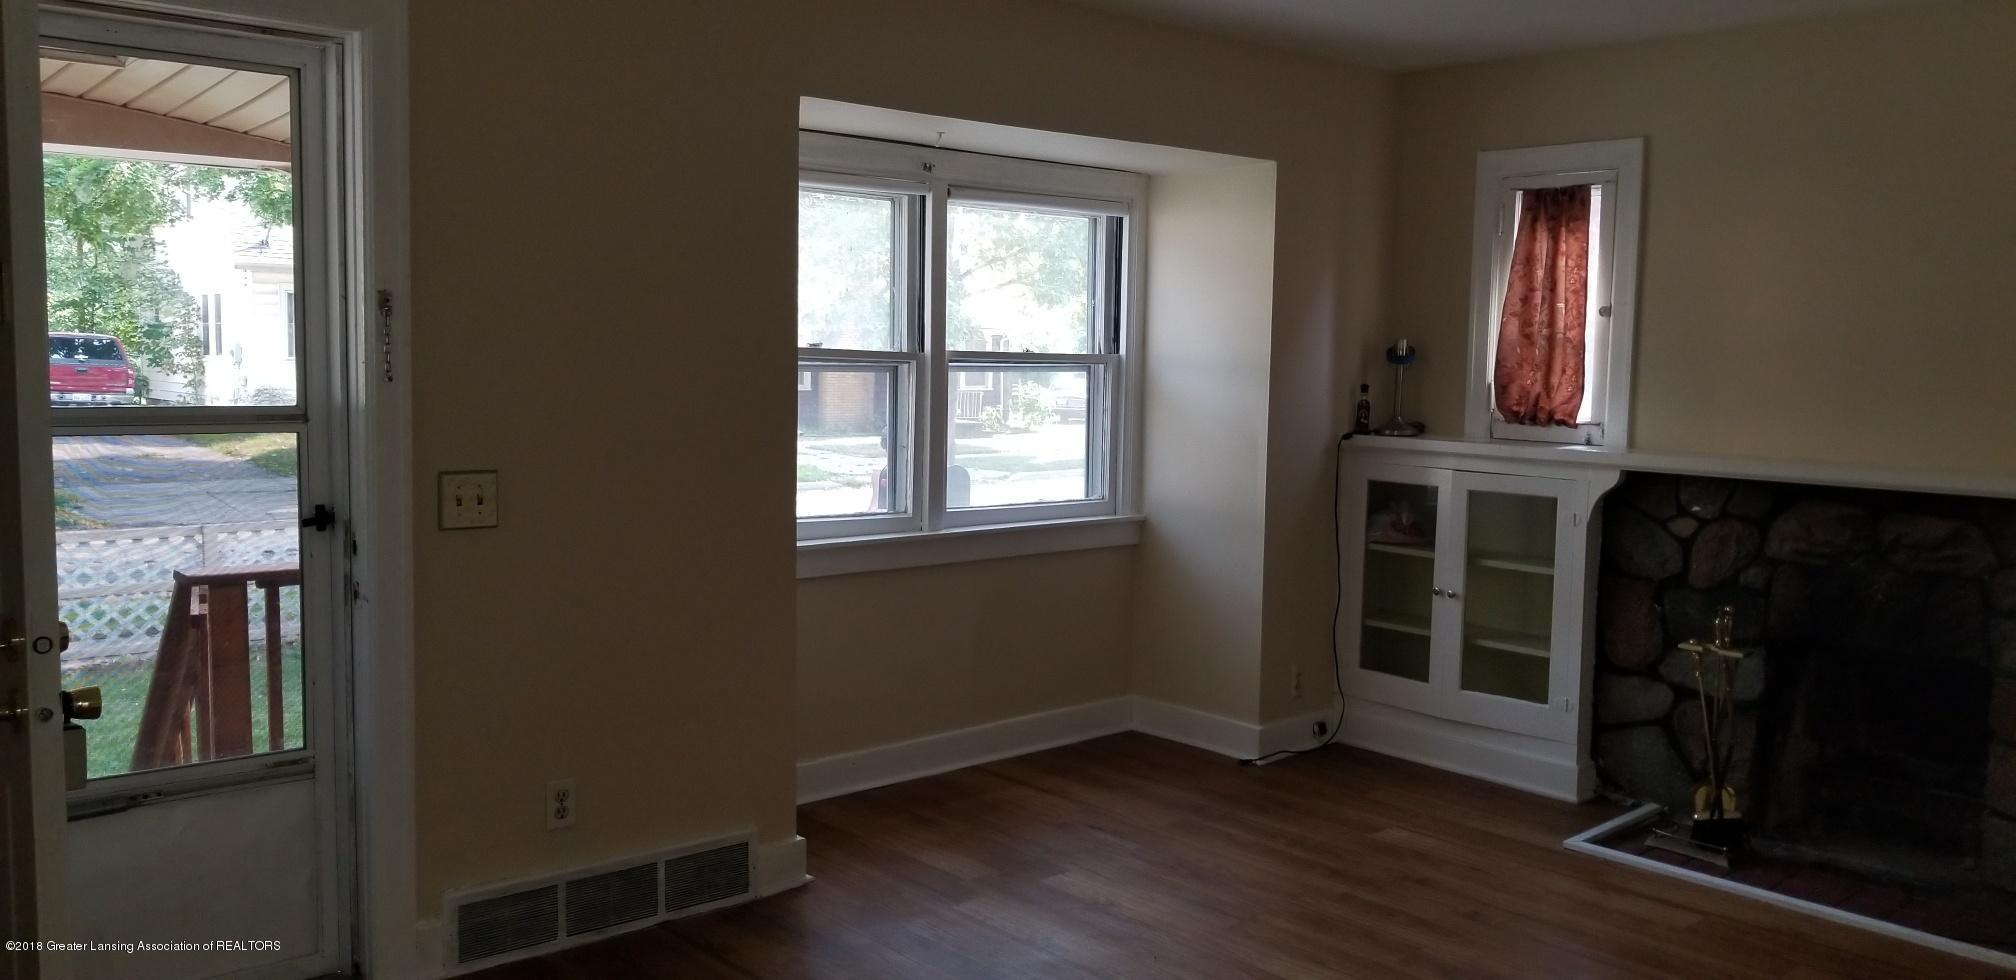 549 E Greenlawn Ave - 20180826_174337_resized - 8